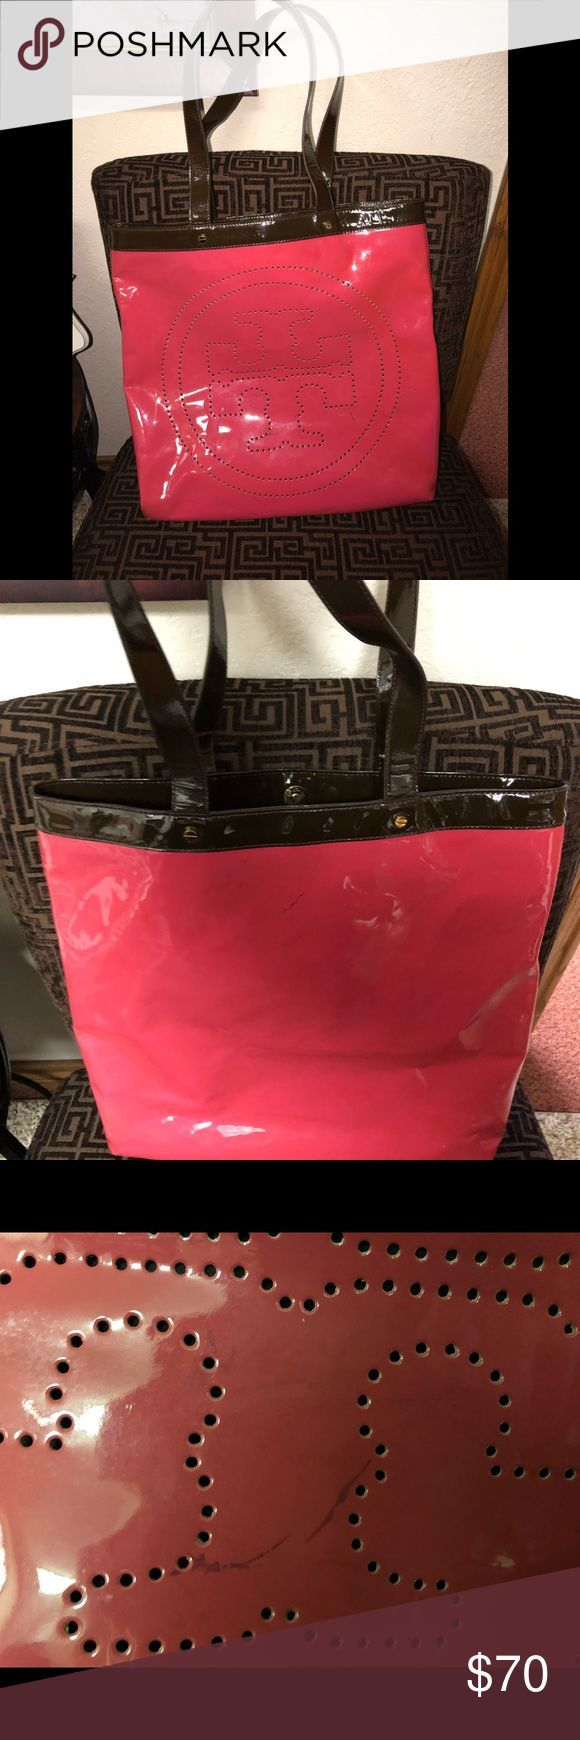 Tory Burch Pink Patent Leather Tote Tory Burch Pin…  #AestheticButtockSurgical…